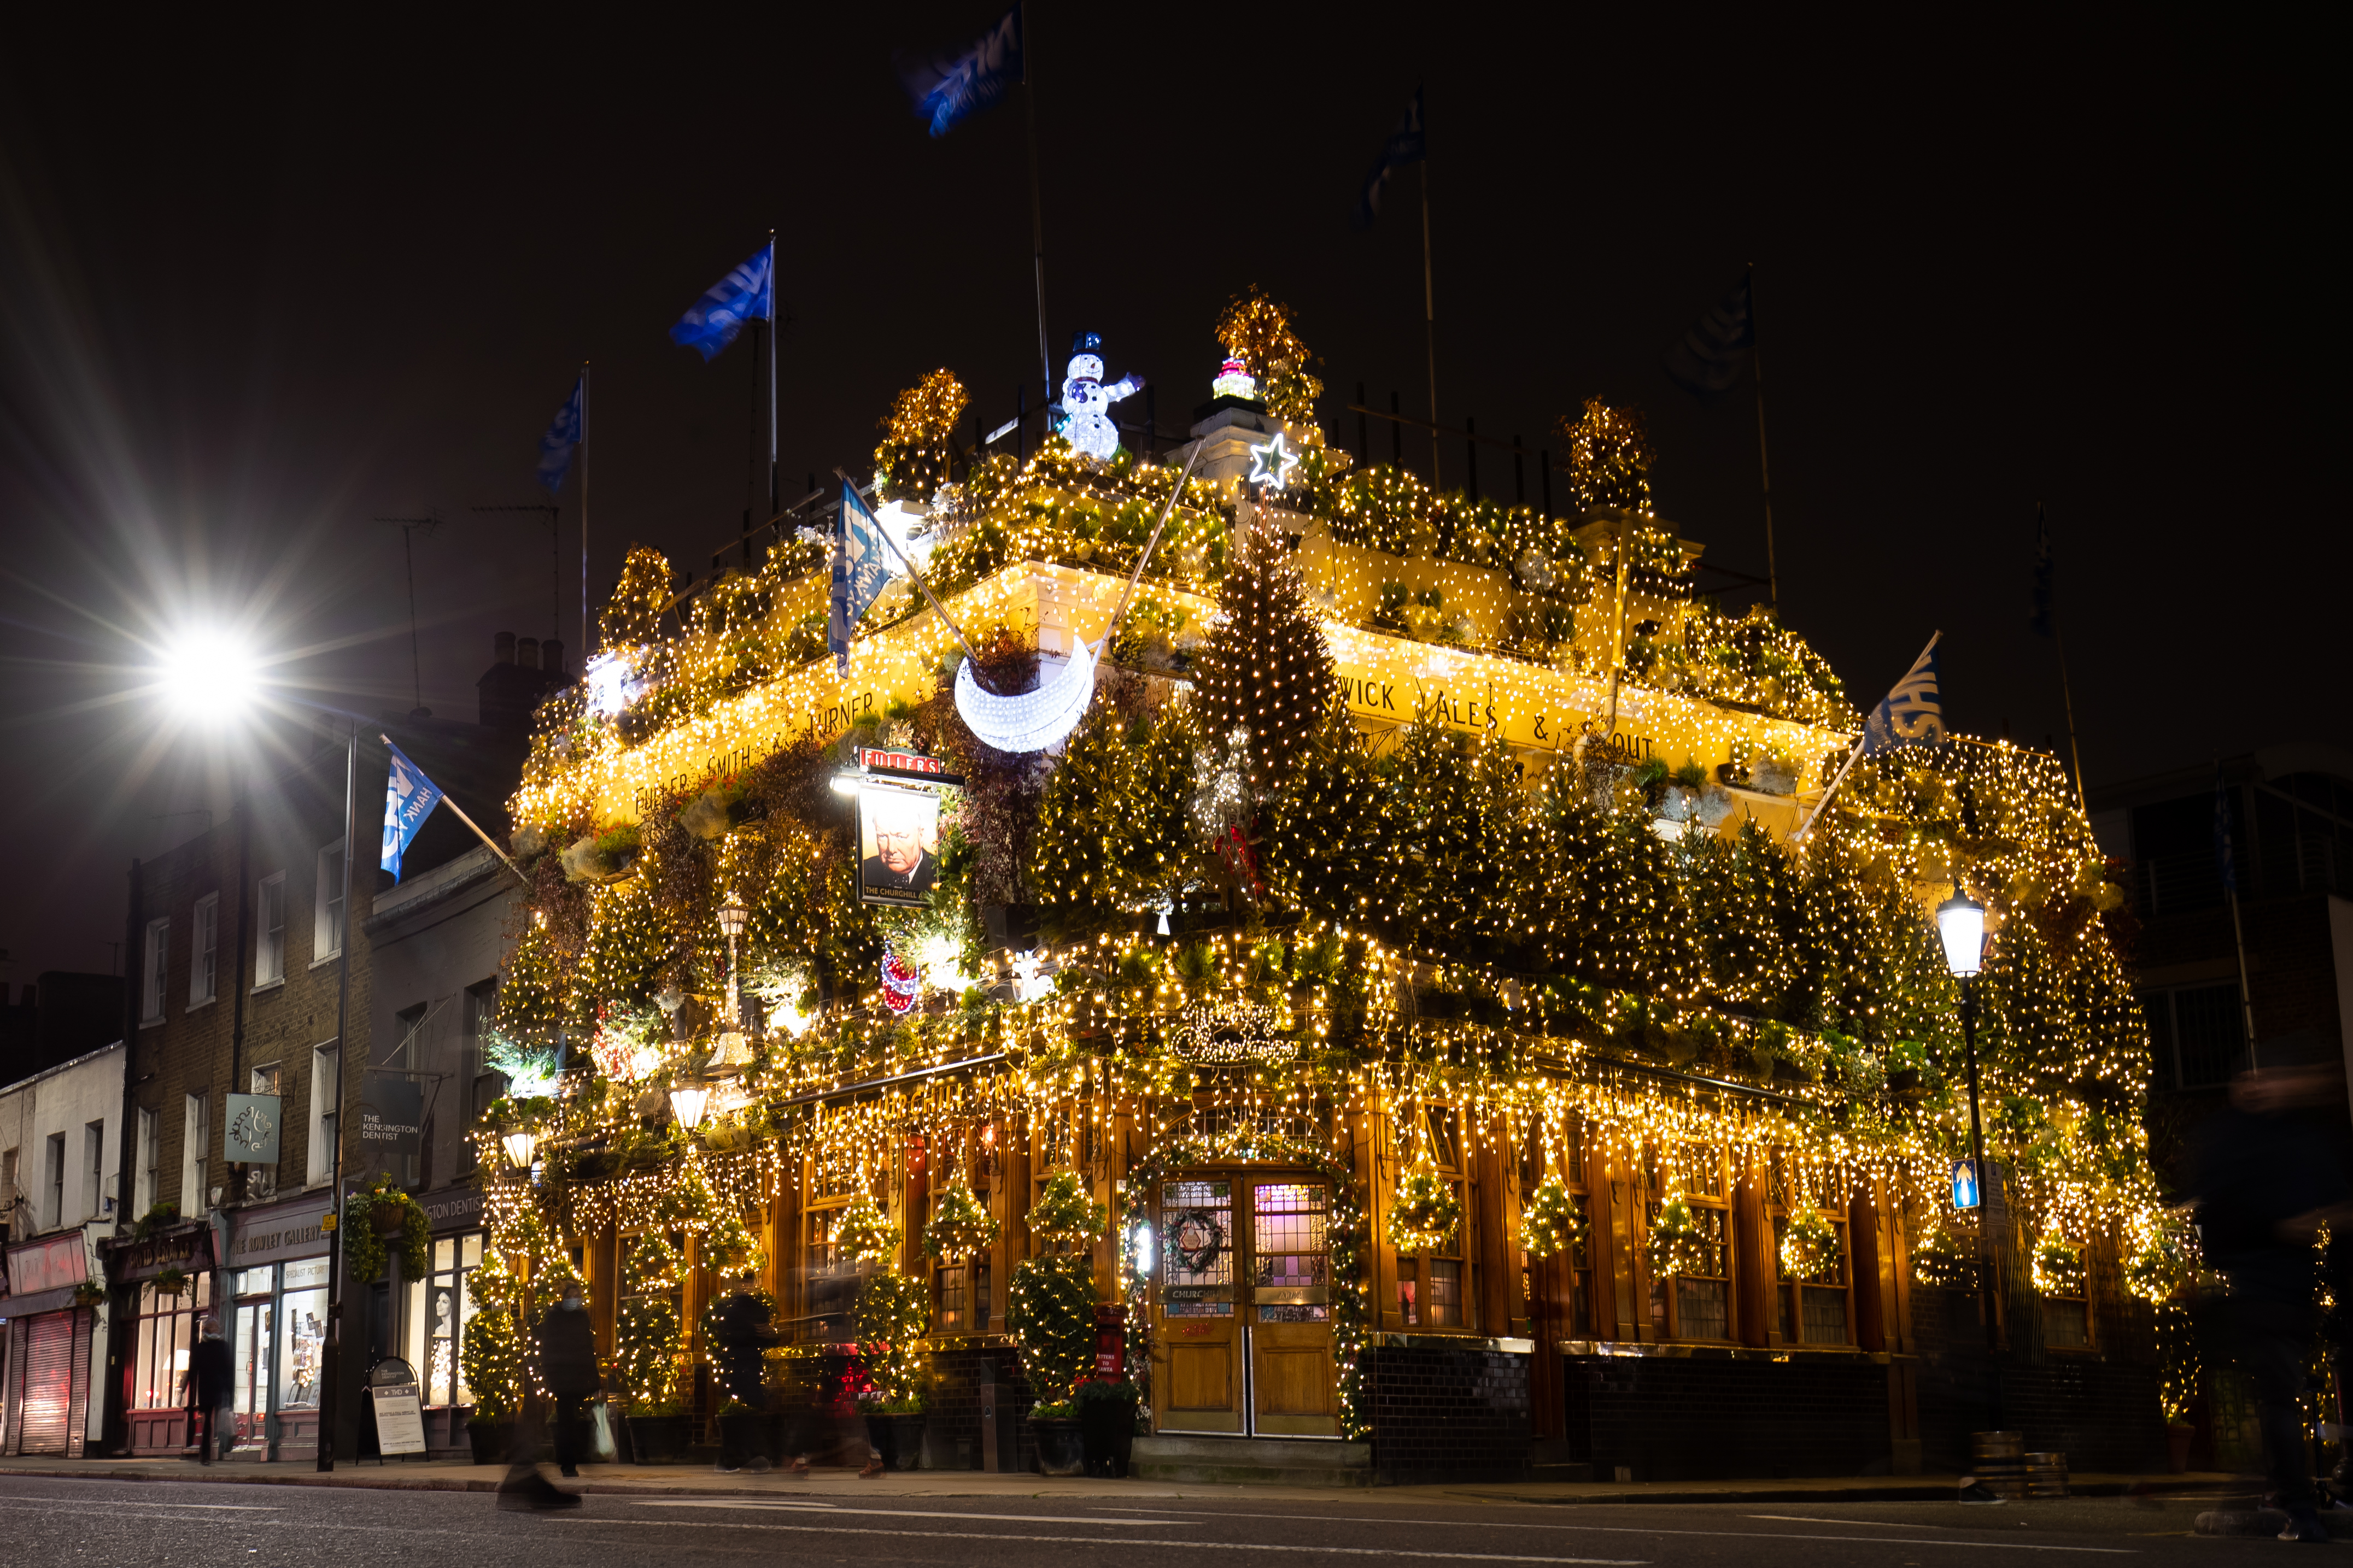 The Churchill Arms pub in London switches on its Christmas lights. (Photo by Aaron Chown/PA Images via Getty Images)